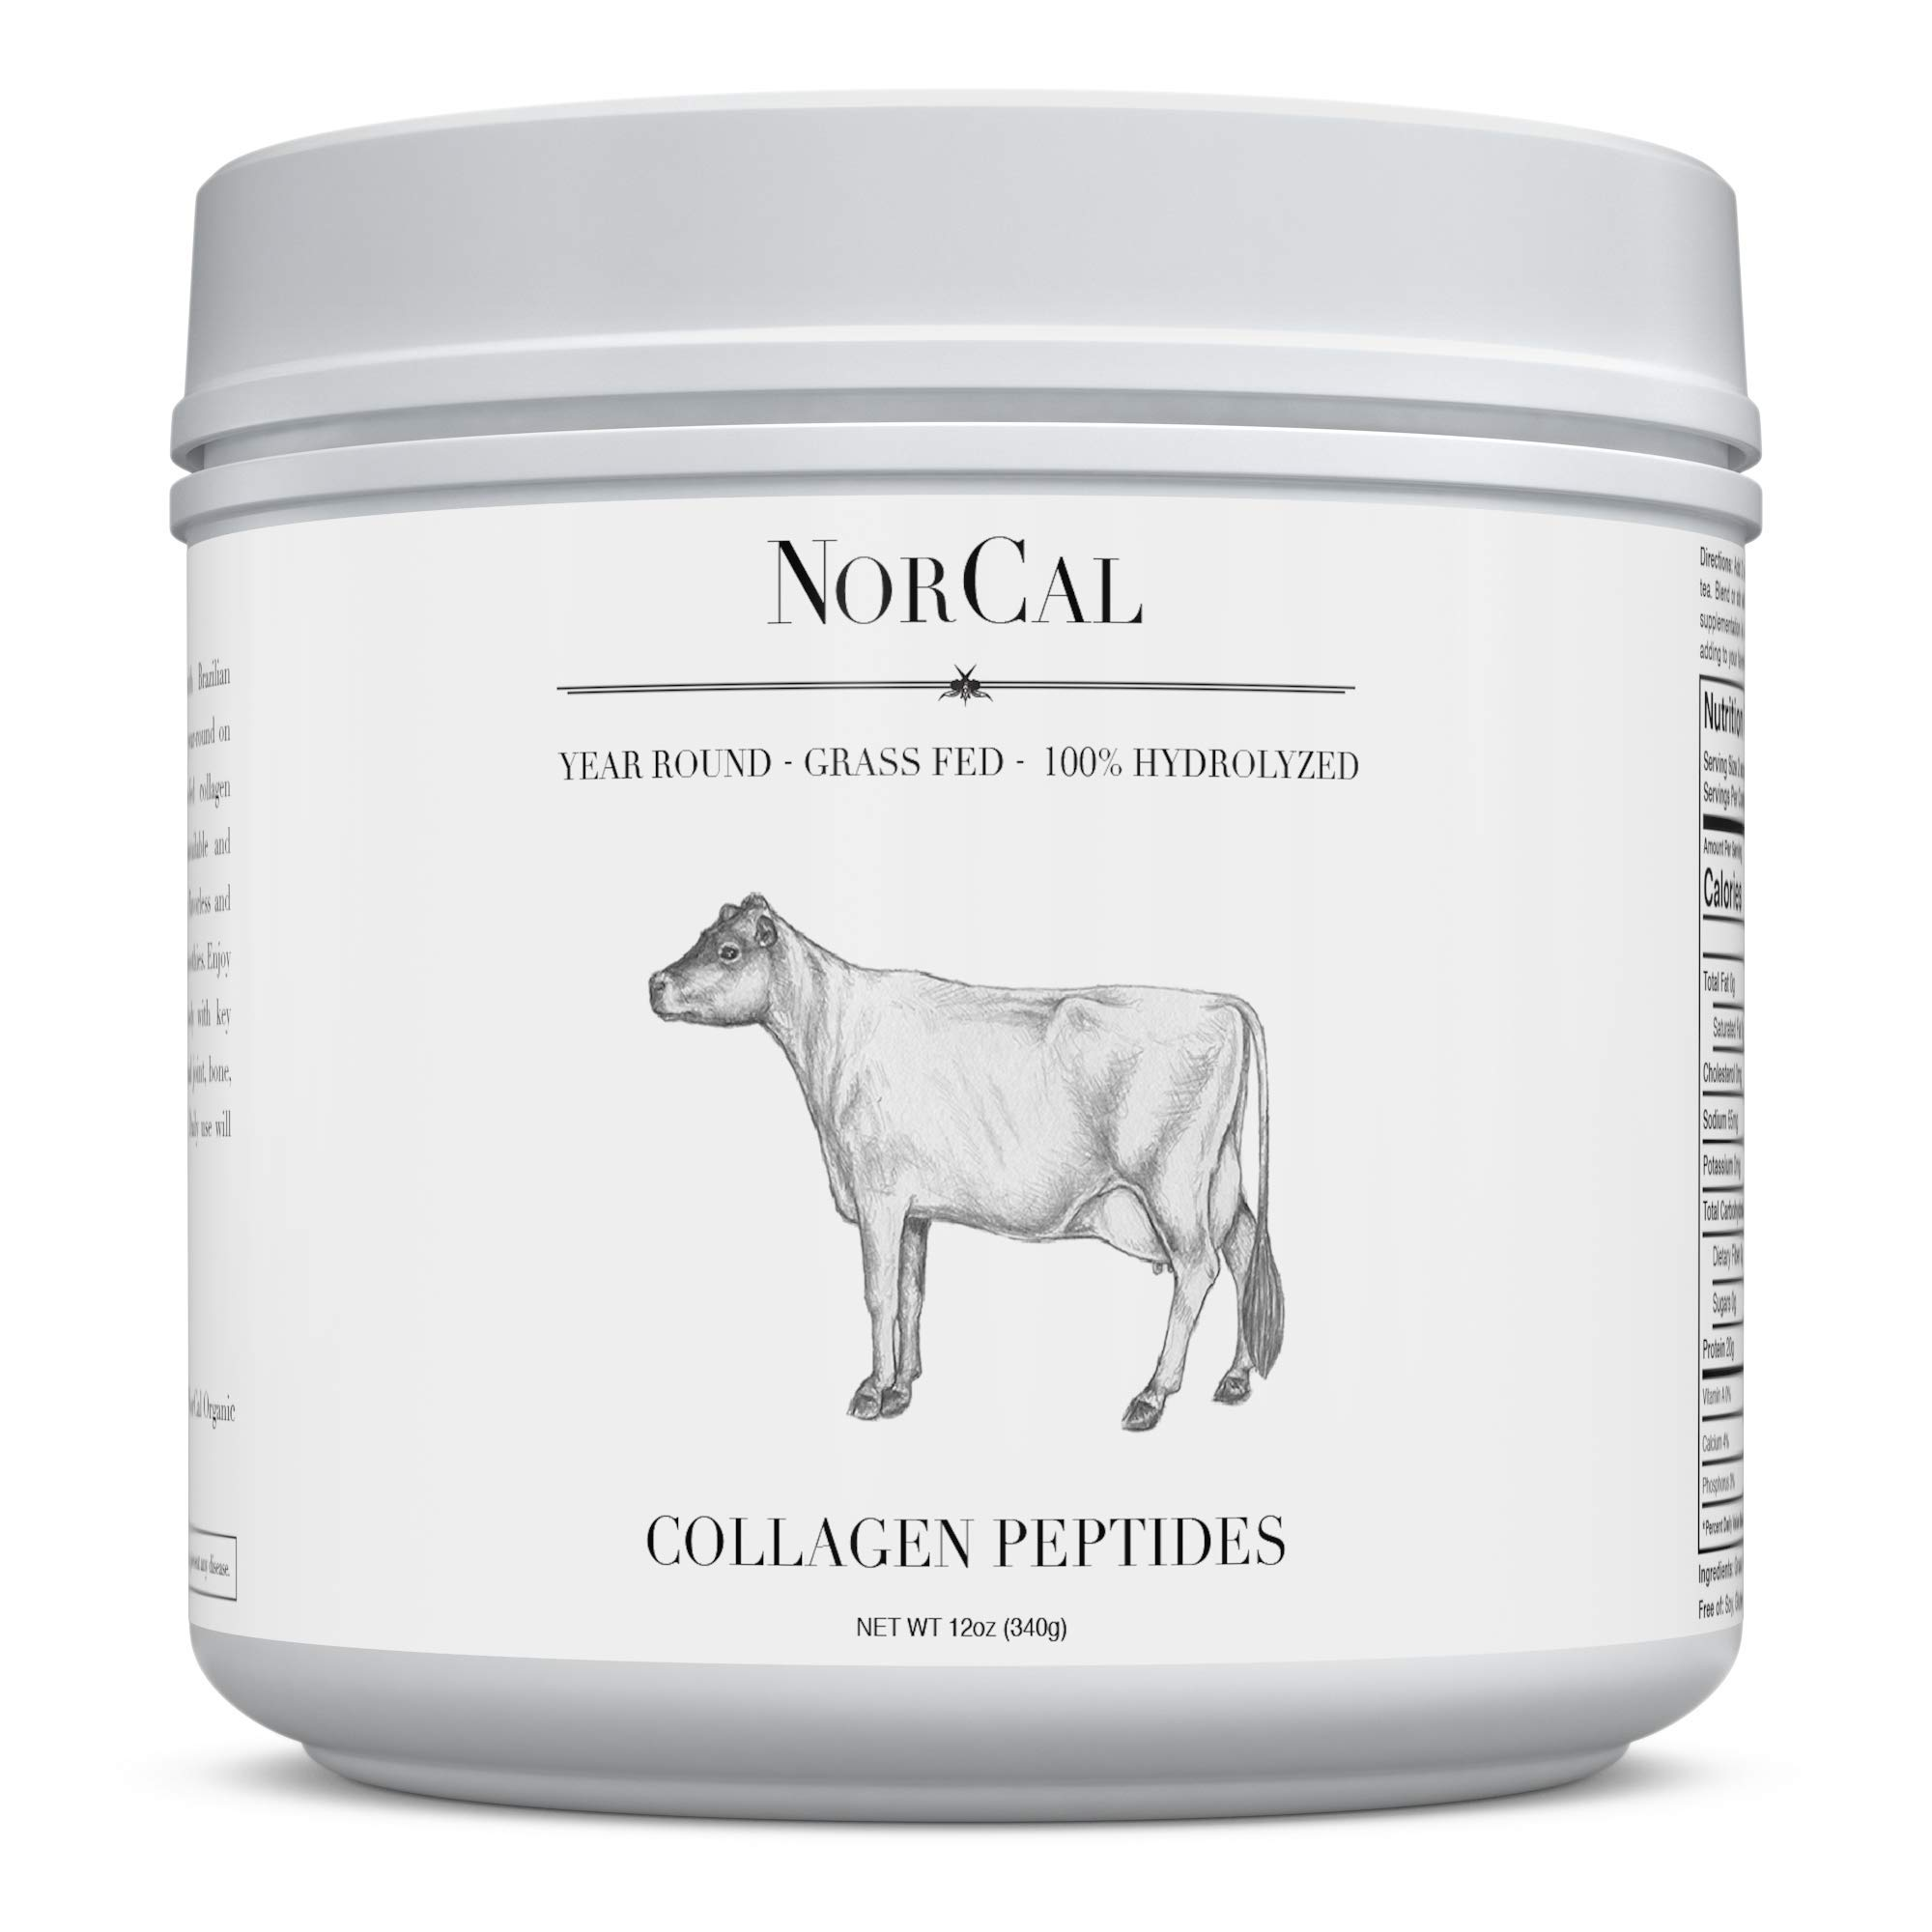 Norcal Organics Grass-Fed Collagen Peptide Hydrolysate Powder, 12oz | 20g Protein | Hydrolyzed Keto Supplements Protein Production for Strong Healthy Bones, Joints, Cartilage & Tendons by Source Organic